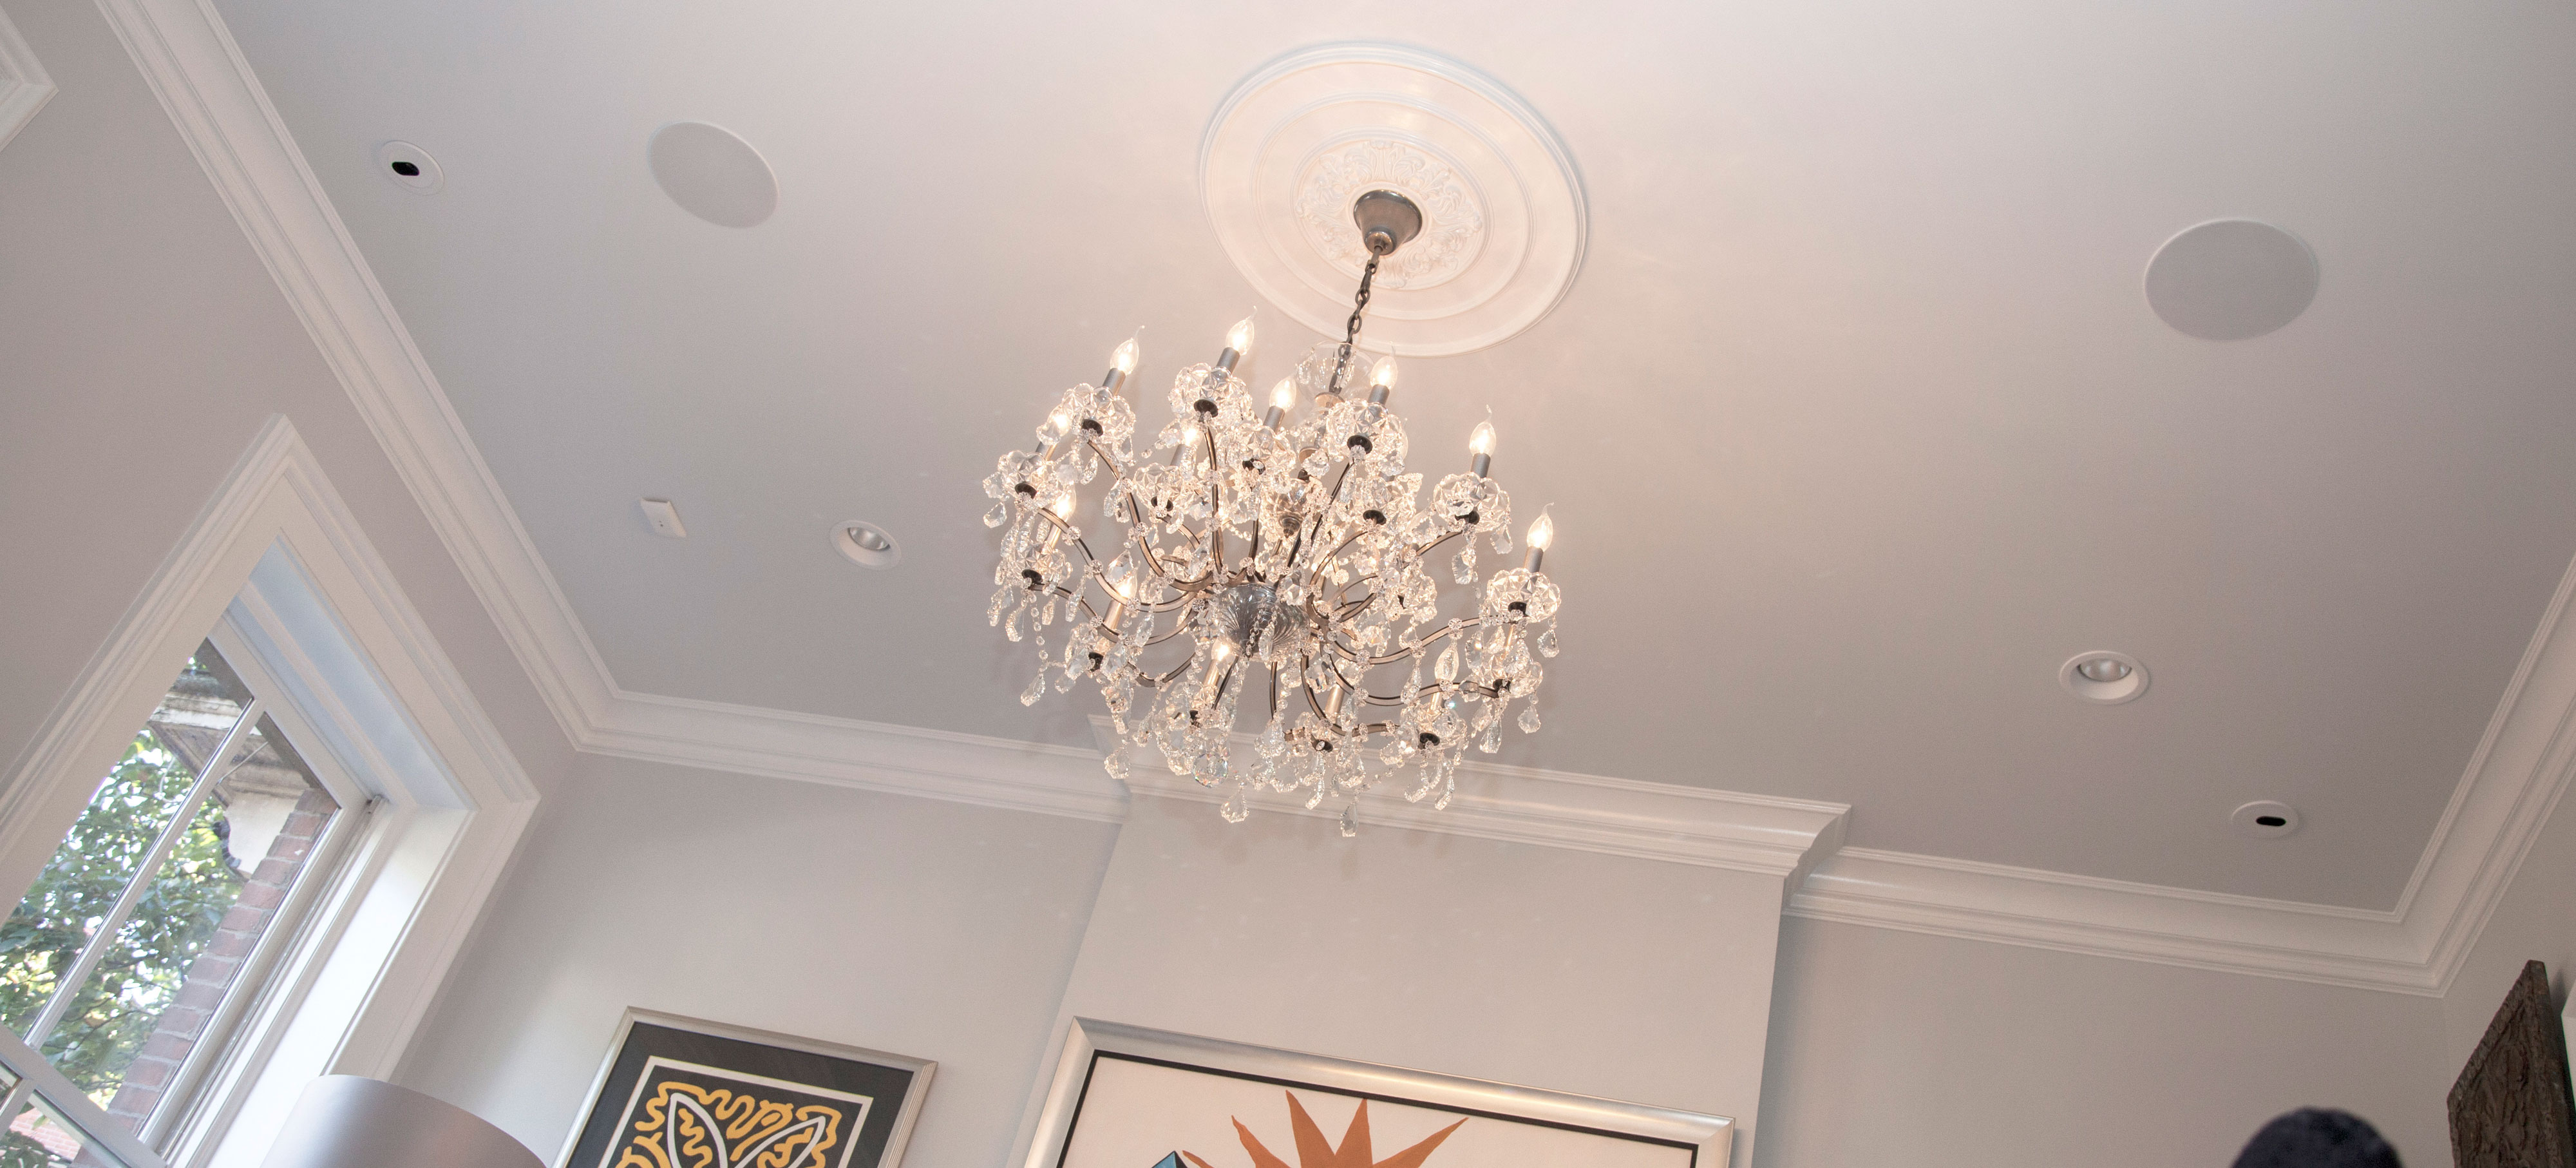 ekena piece depot two split archives benson picture ceiling classic architectural project millwork tag medallion